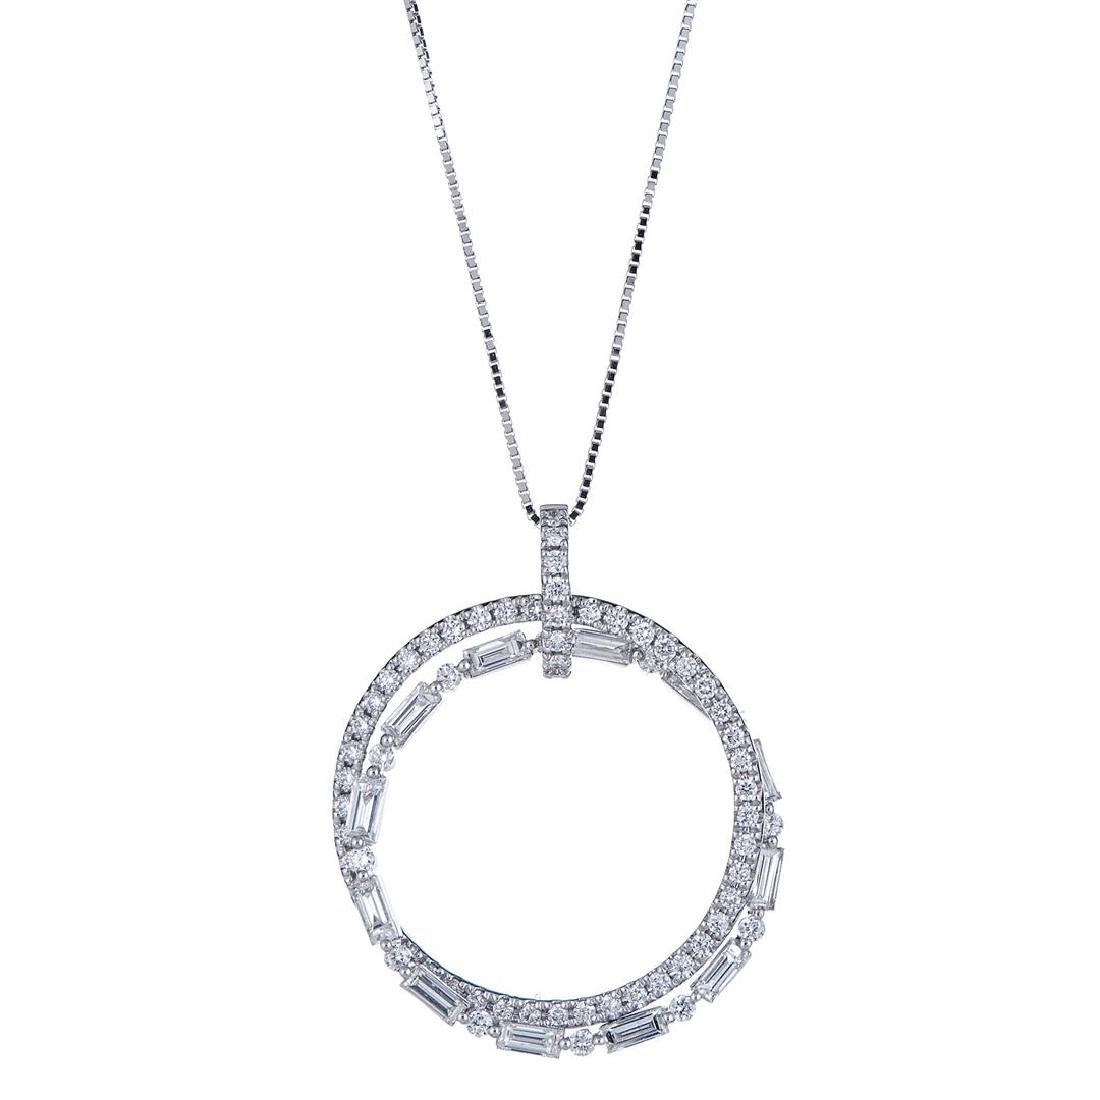 0.77 ctw Diamond Pendant - 18KT White Gold